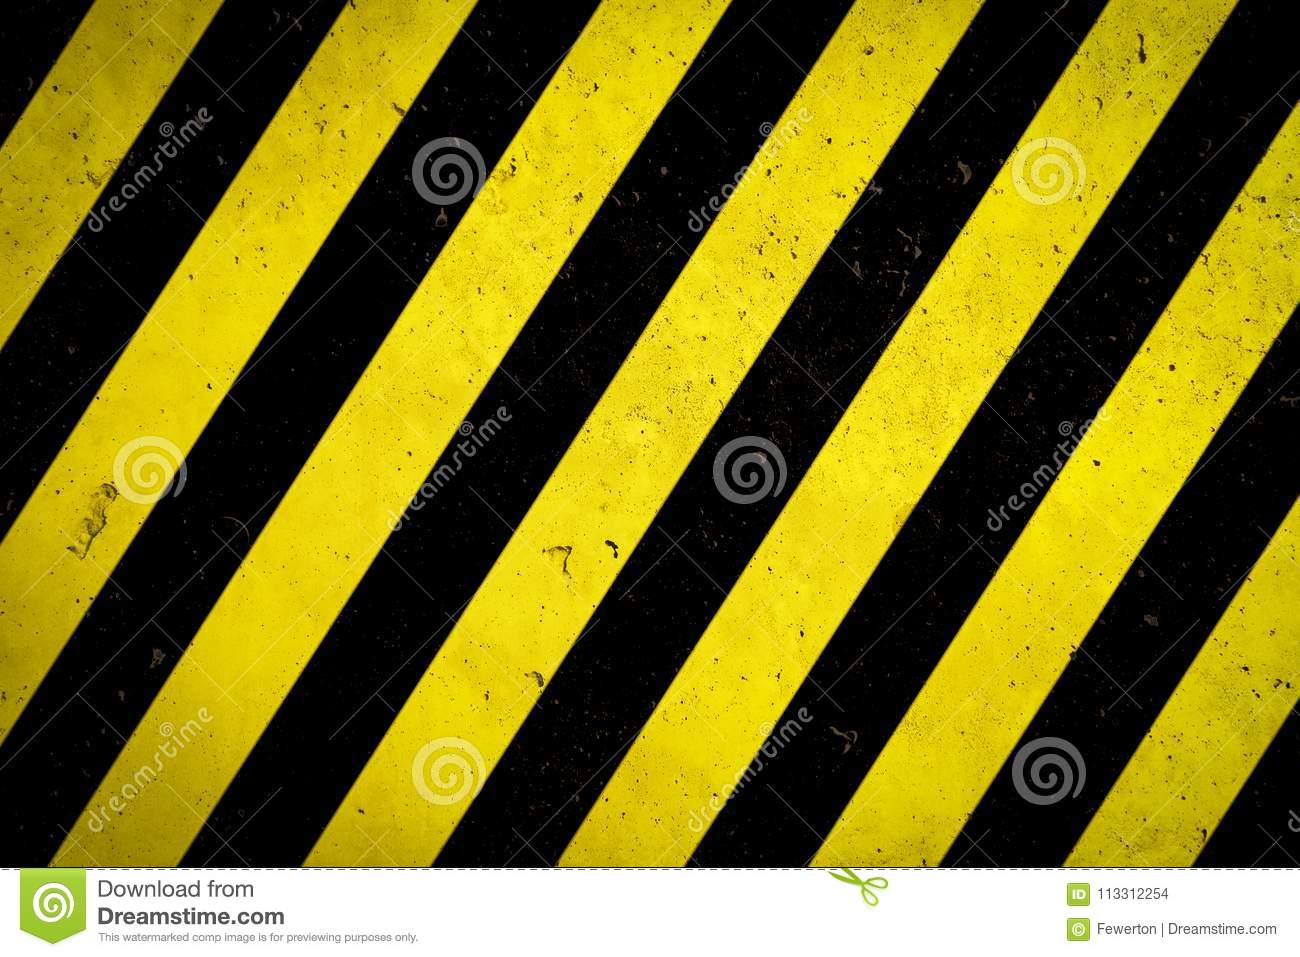 Danger zone: Warning sign yellow and black stripes painted over concrete wall coarse facade with holes and imperfections texture